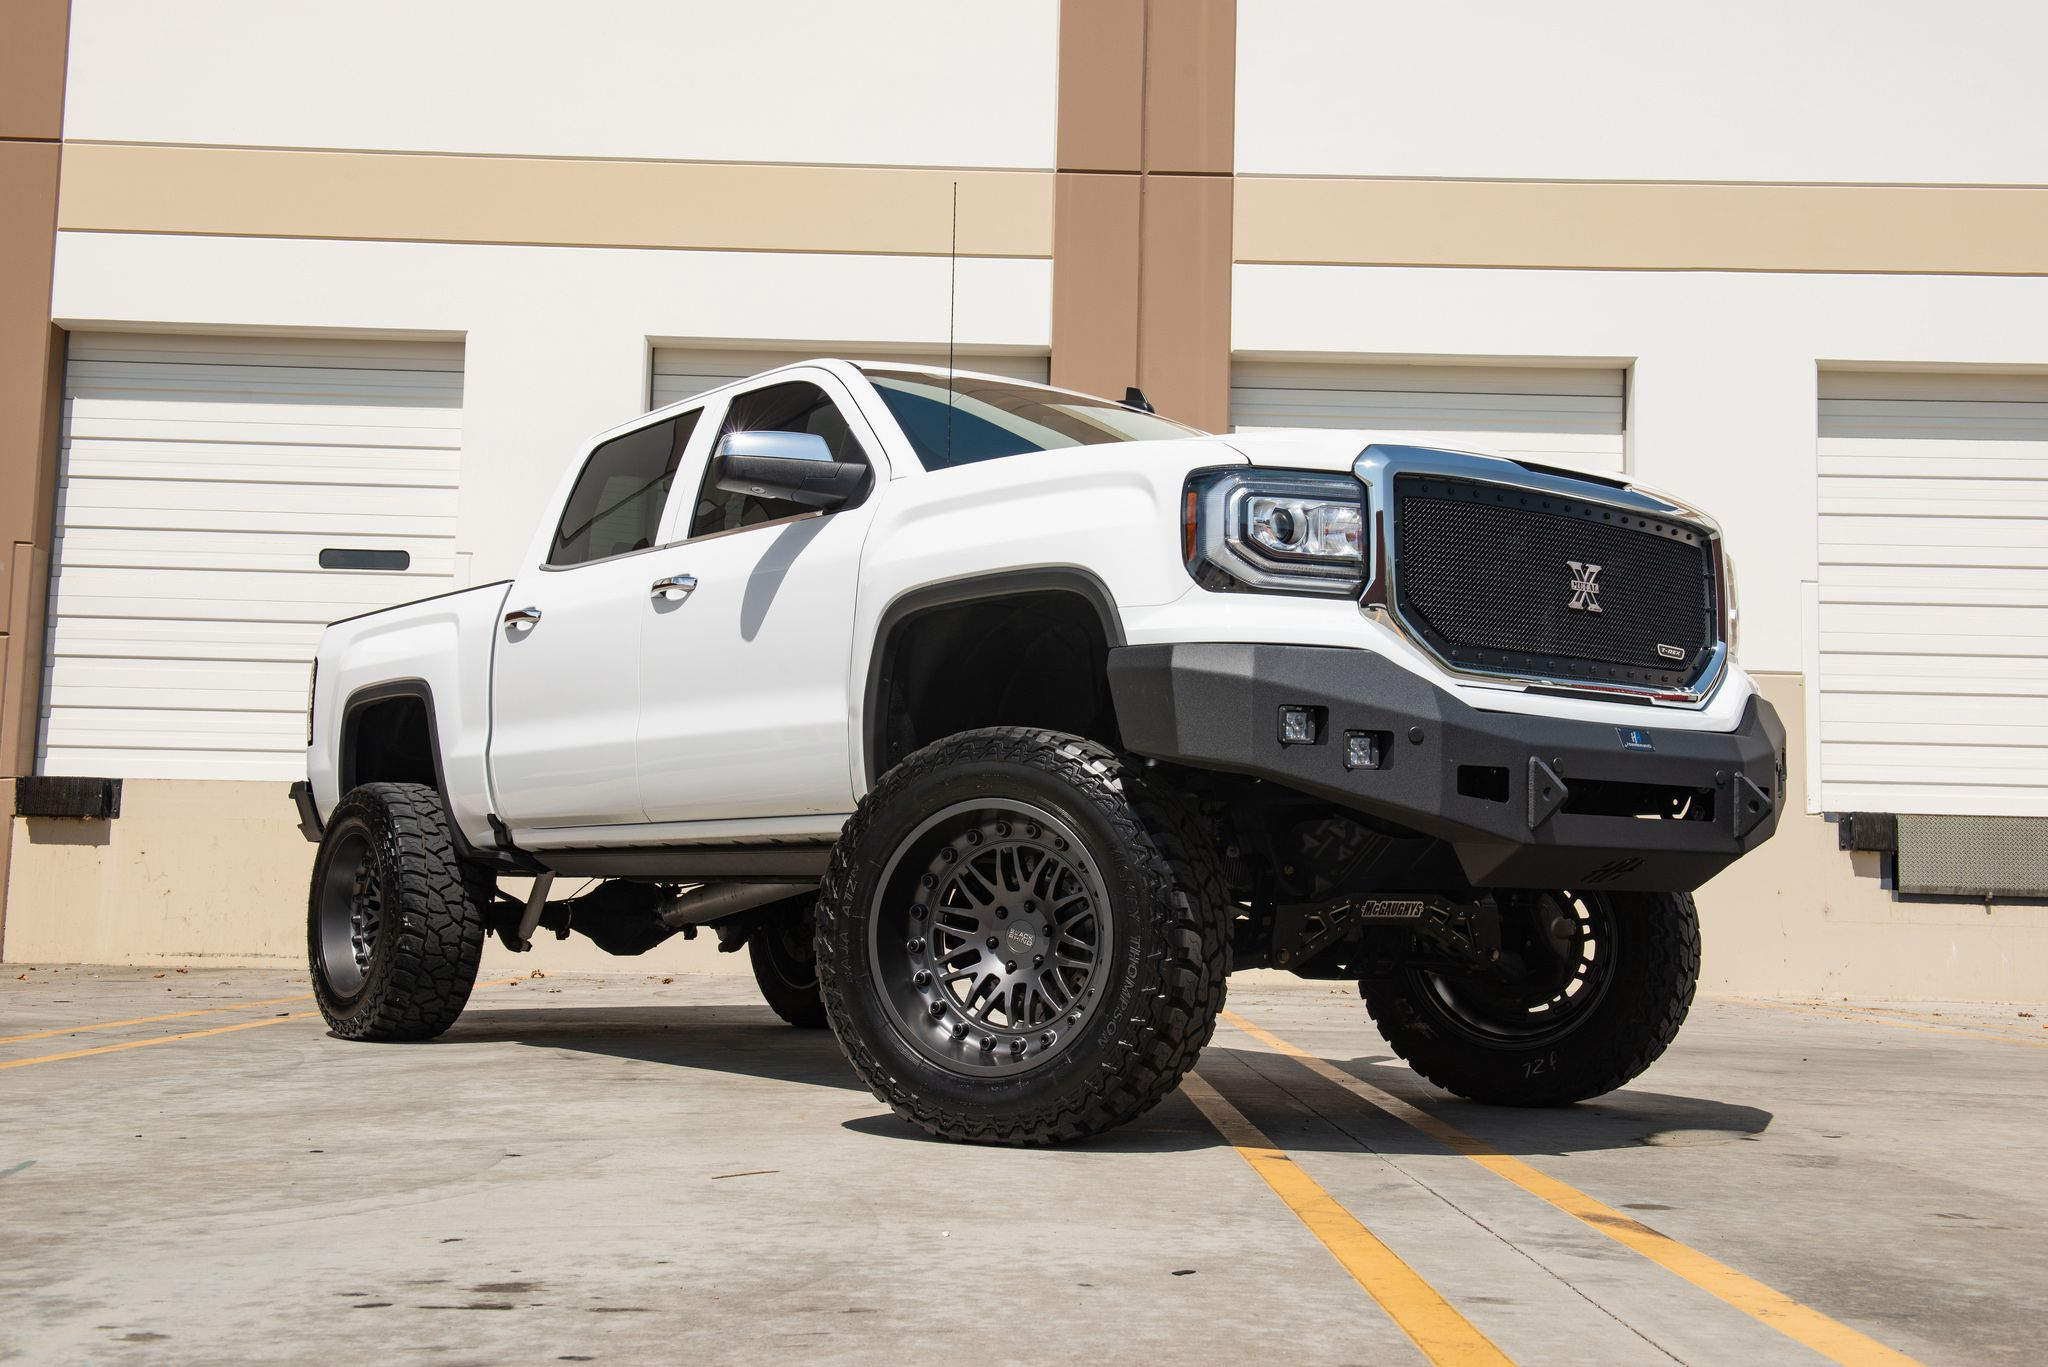 White Truck – GMC Sierra 1500 on Black Rhino Fury 22in wheels